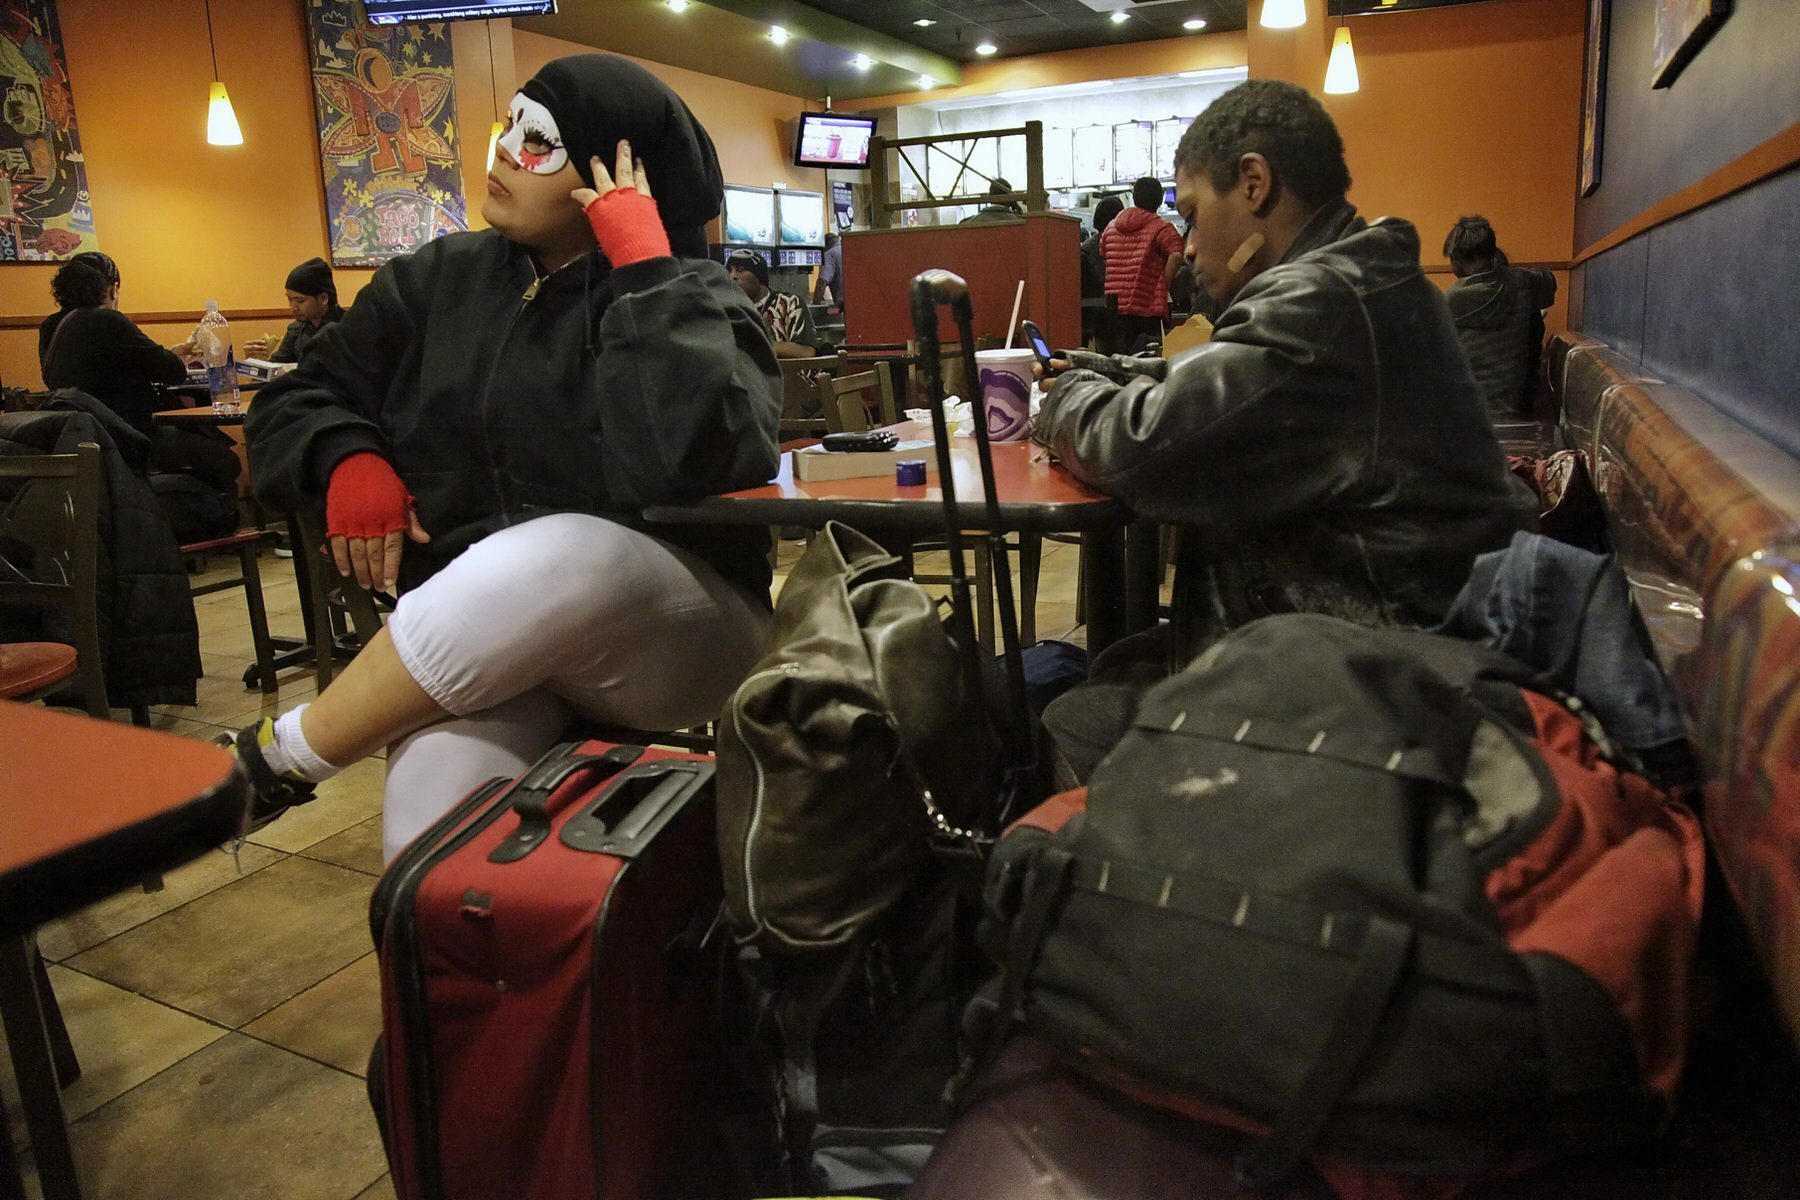 Queer youth sit with their belongings at a table in a fast food restaurant.